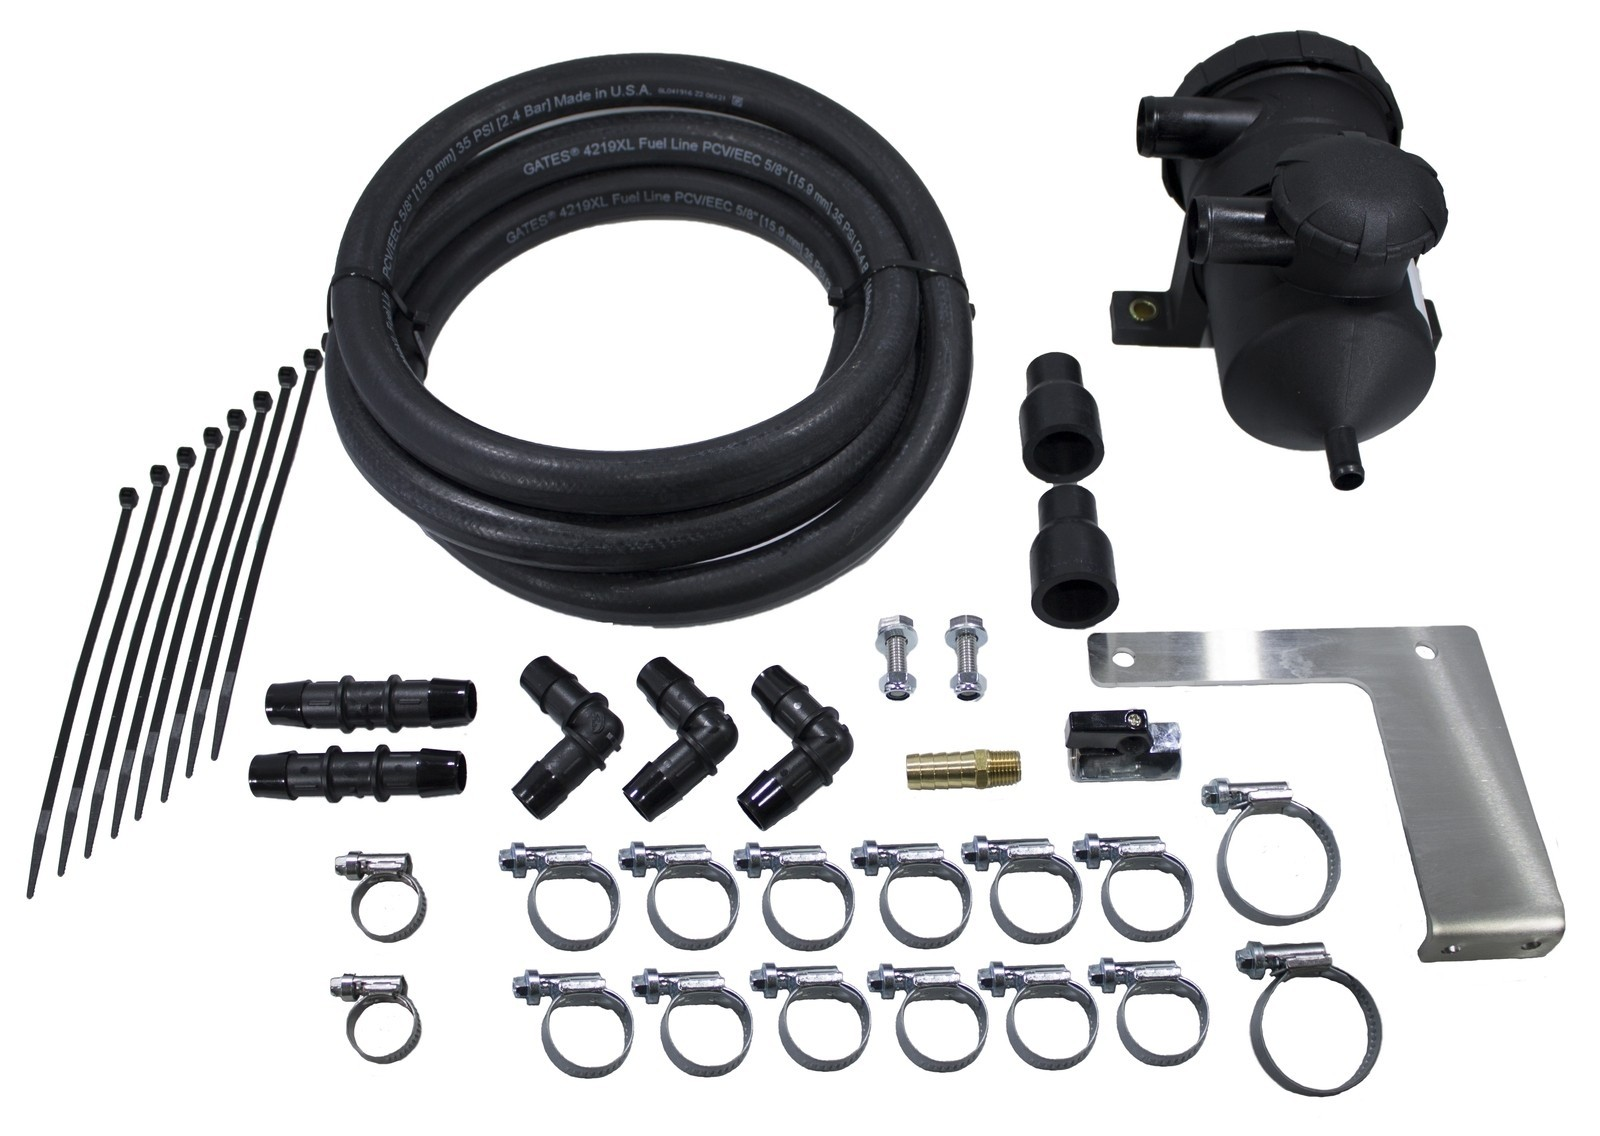 Provent Oil Separator Kit Ford Ranger PX 2.2/3.2 2012 - 2015 PV621DPK